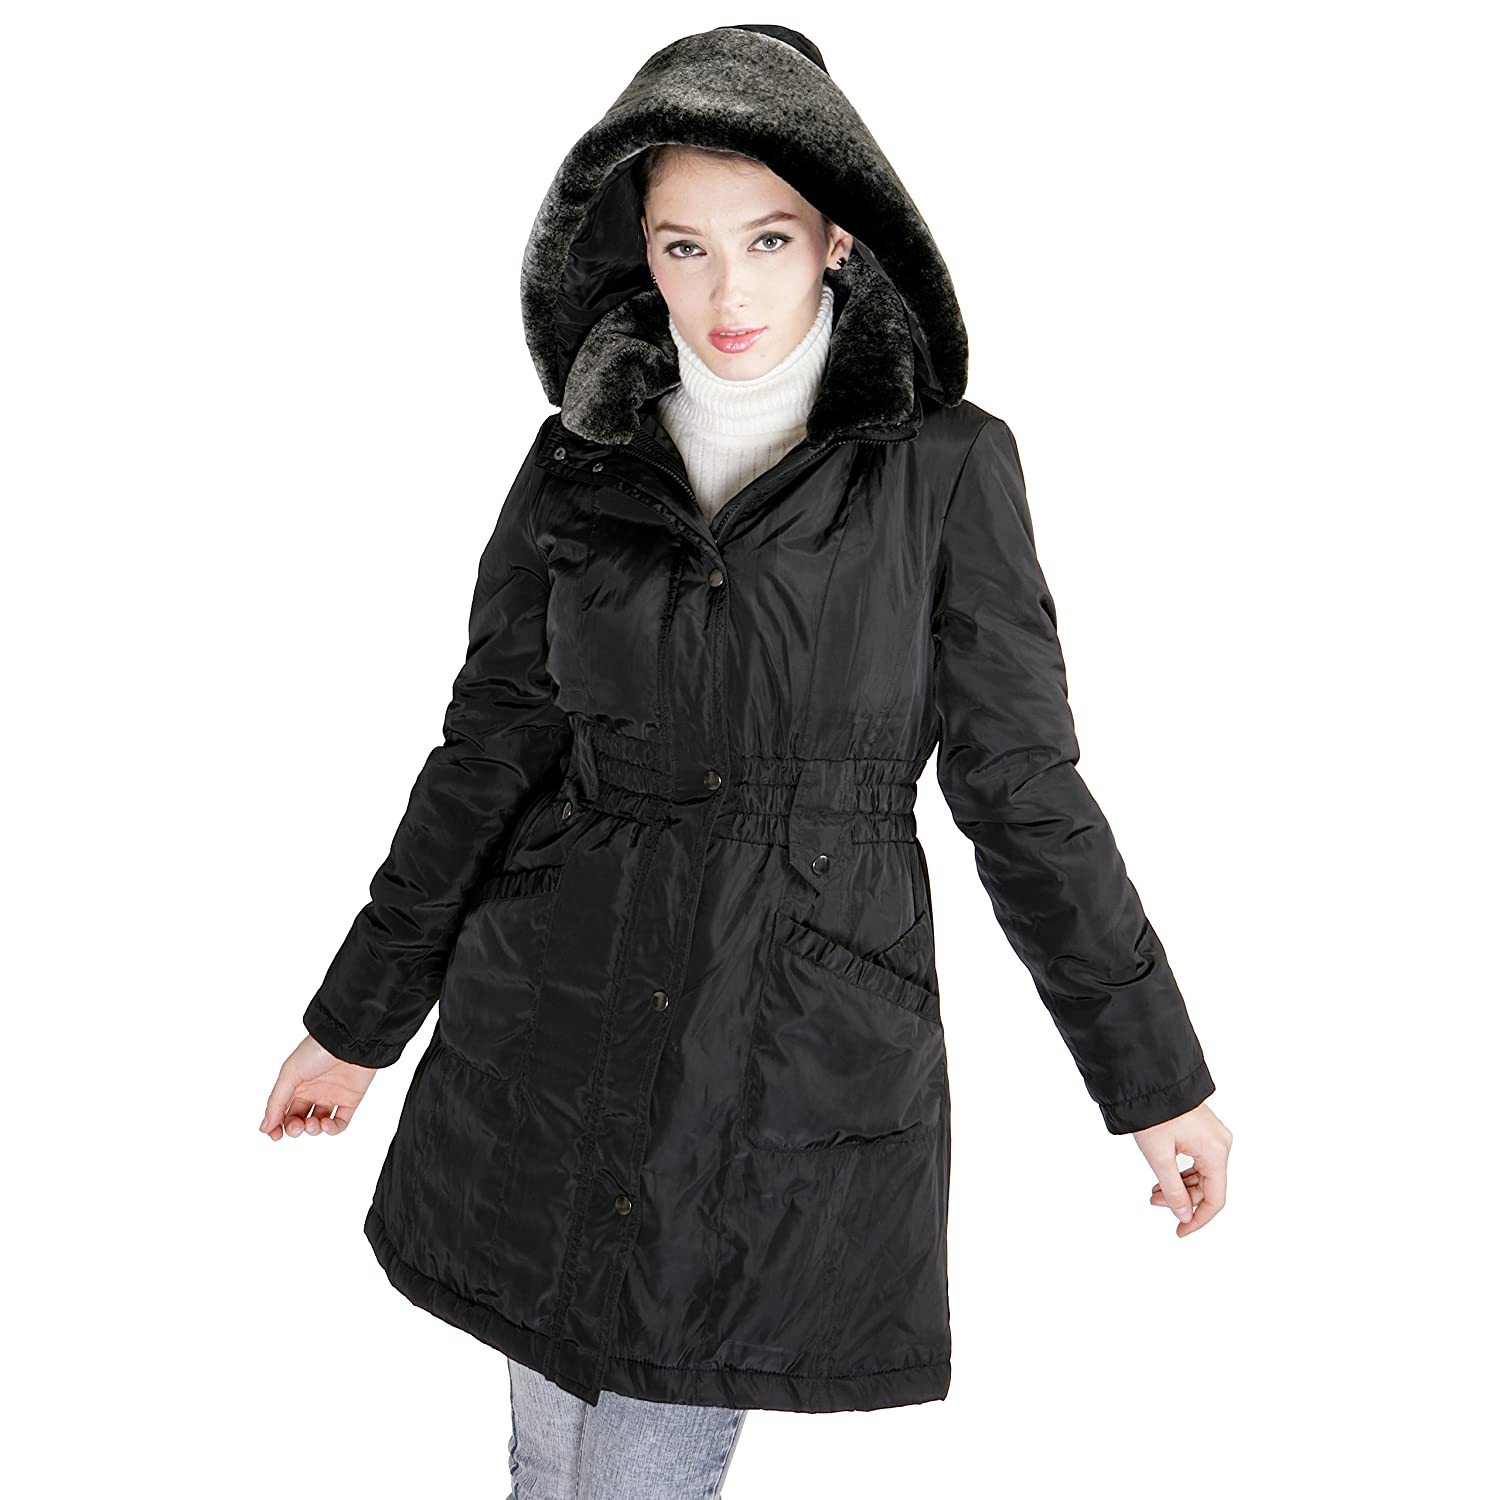 BGSD Women's Thinsualte Filled Parka Coat with Removable Hood – Black M